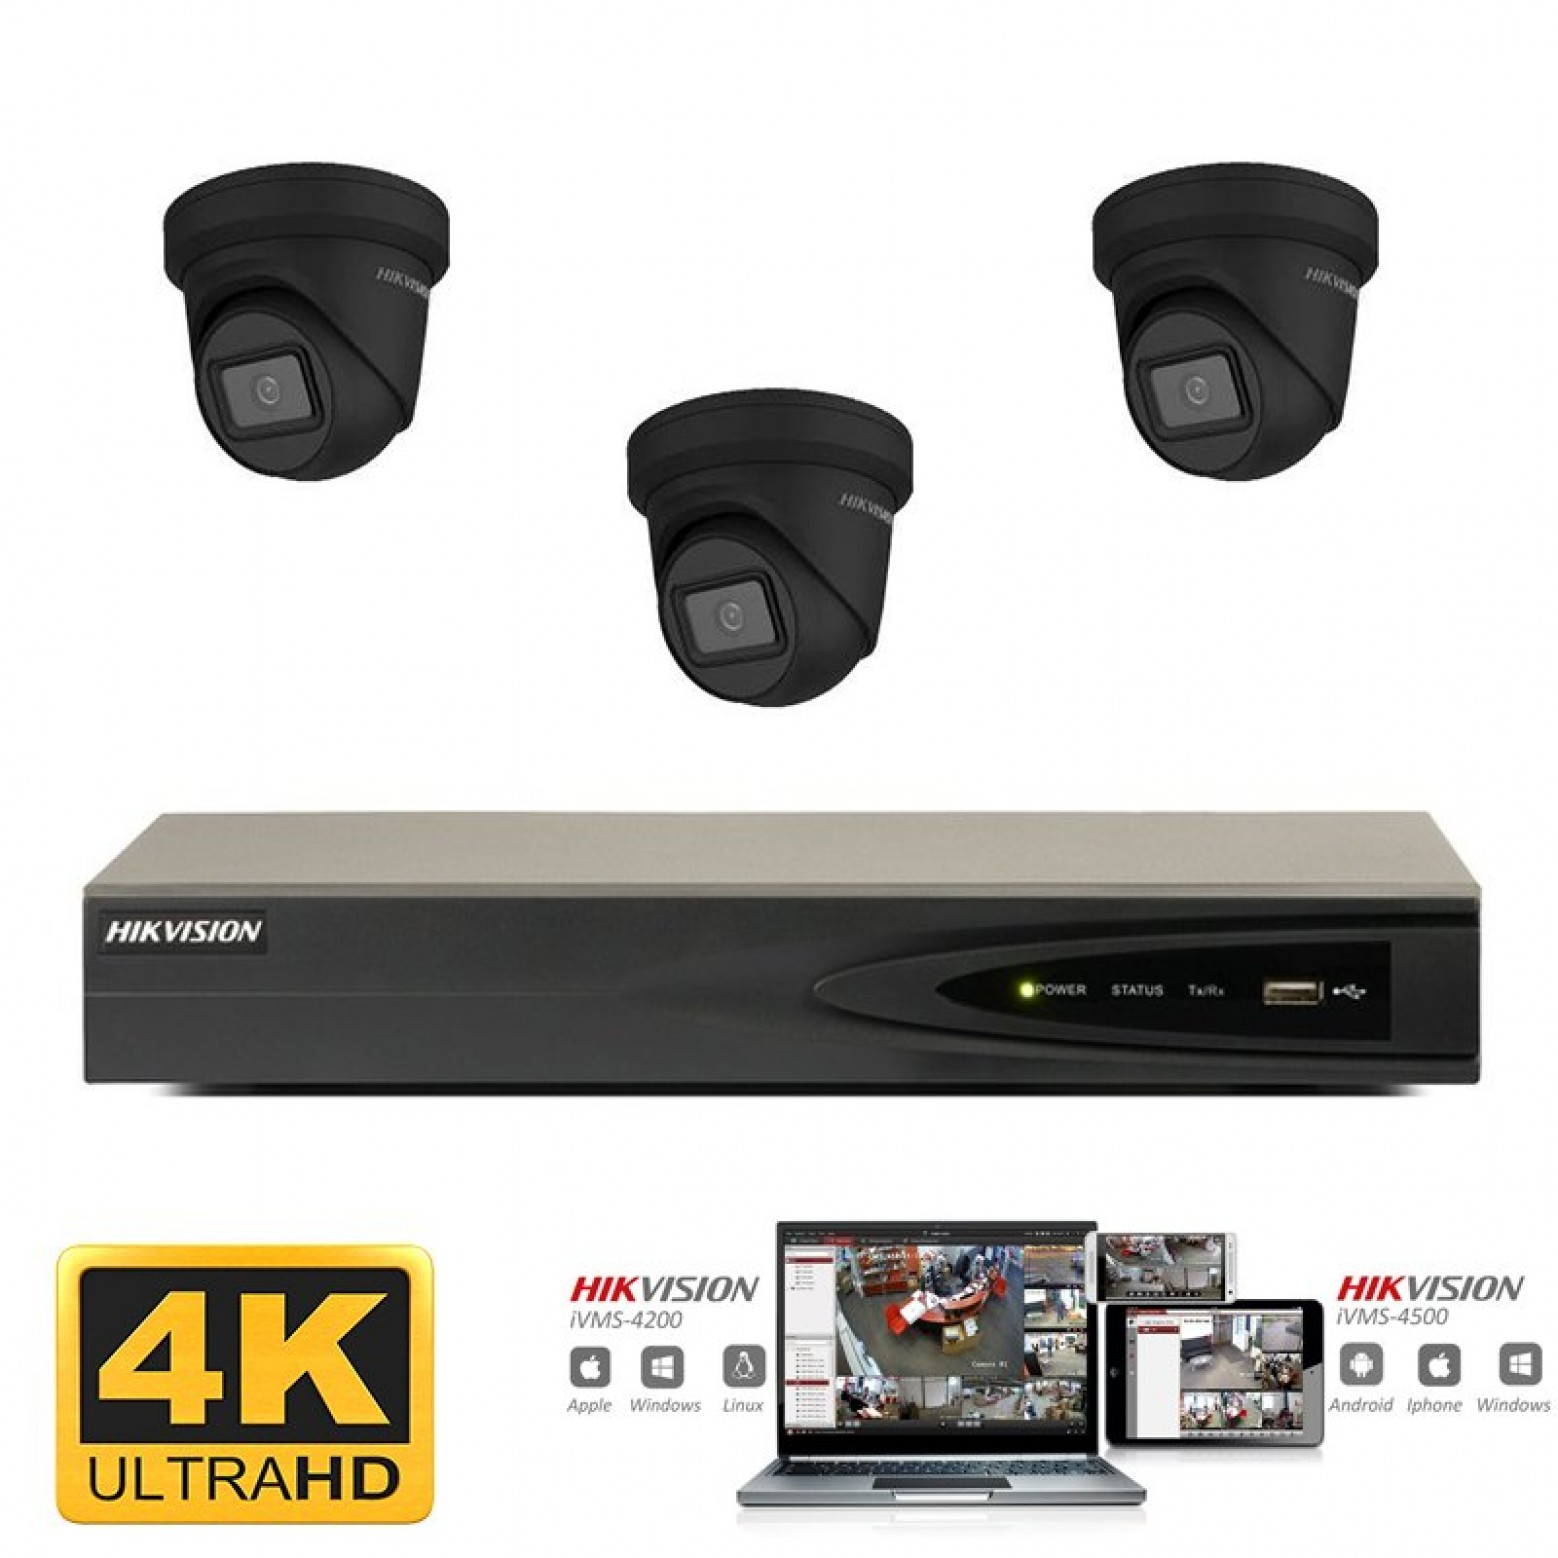 Hikvision IP camera set 3x turret zwart 8 megapixel (4K) Full HD